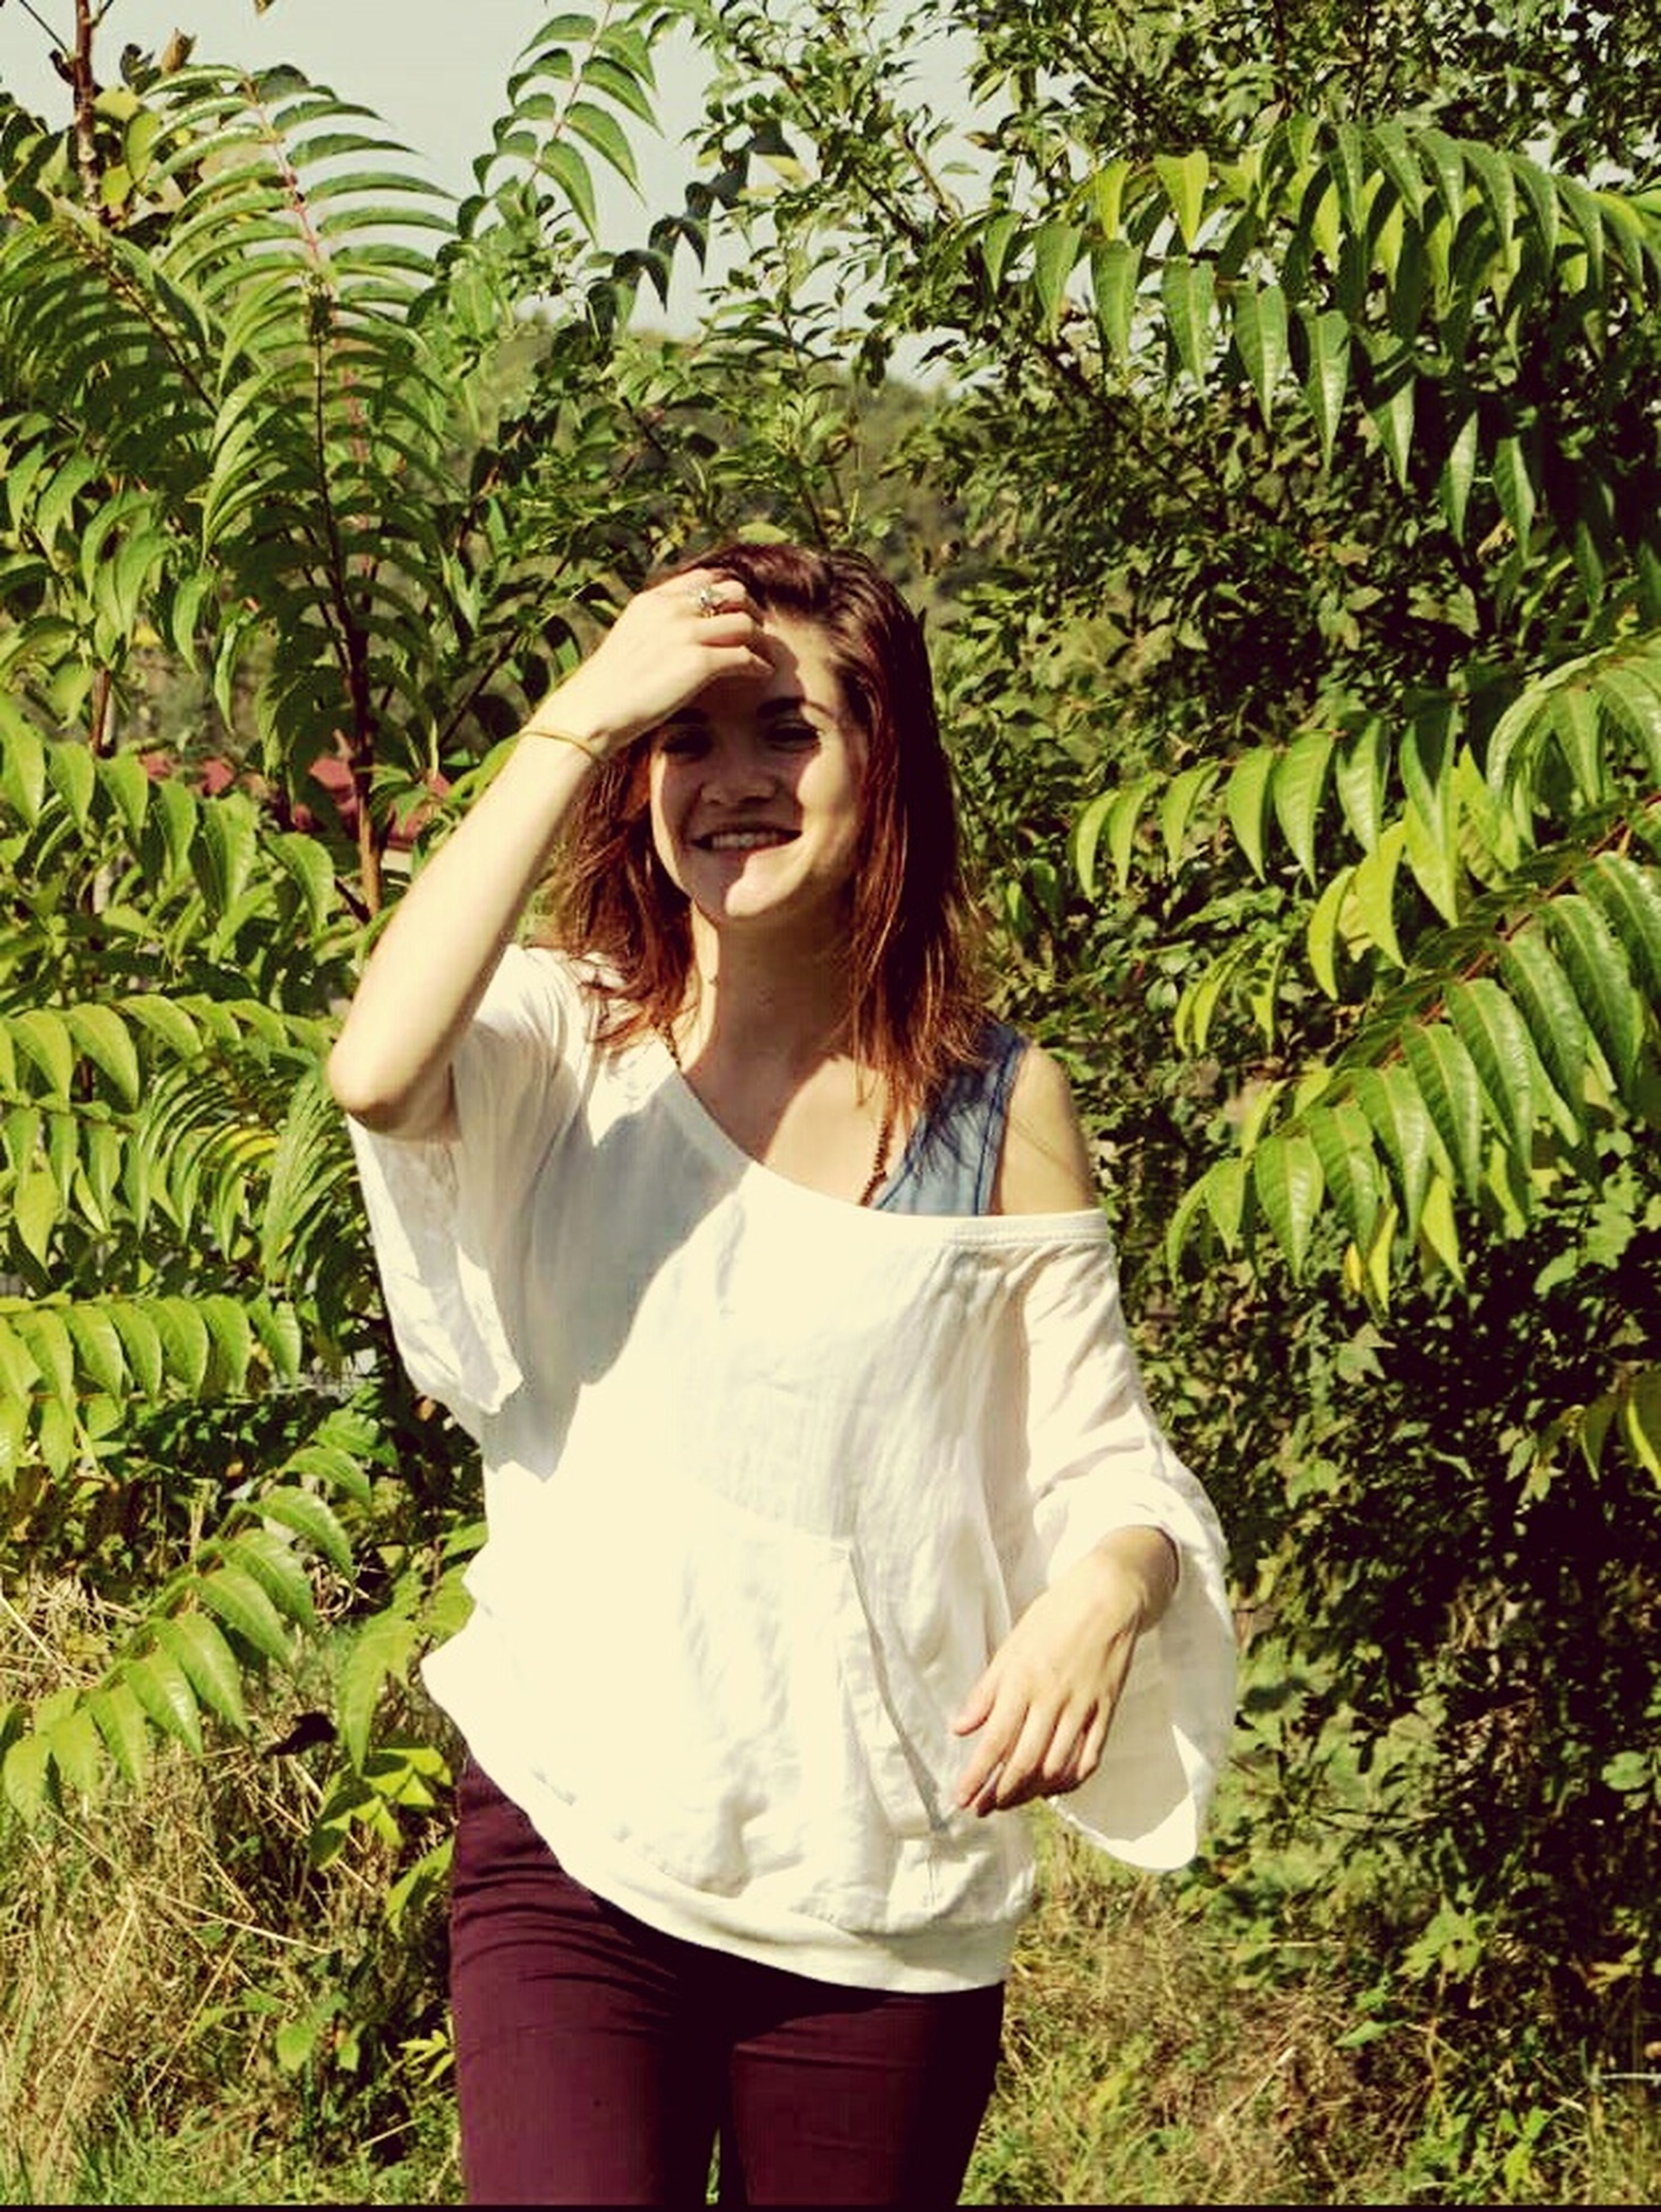 casual clothing, lifestyles, young adult, young women, long hair, person, standing, leisure activity, tree, three quarter length, growth, grass, plant, green color, waist up, field, nature